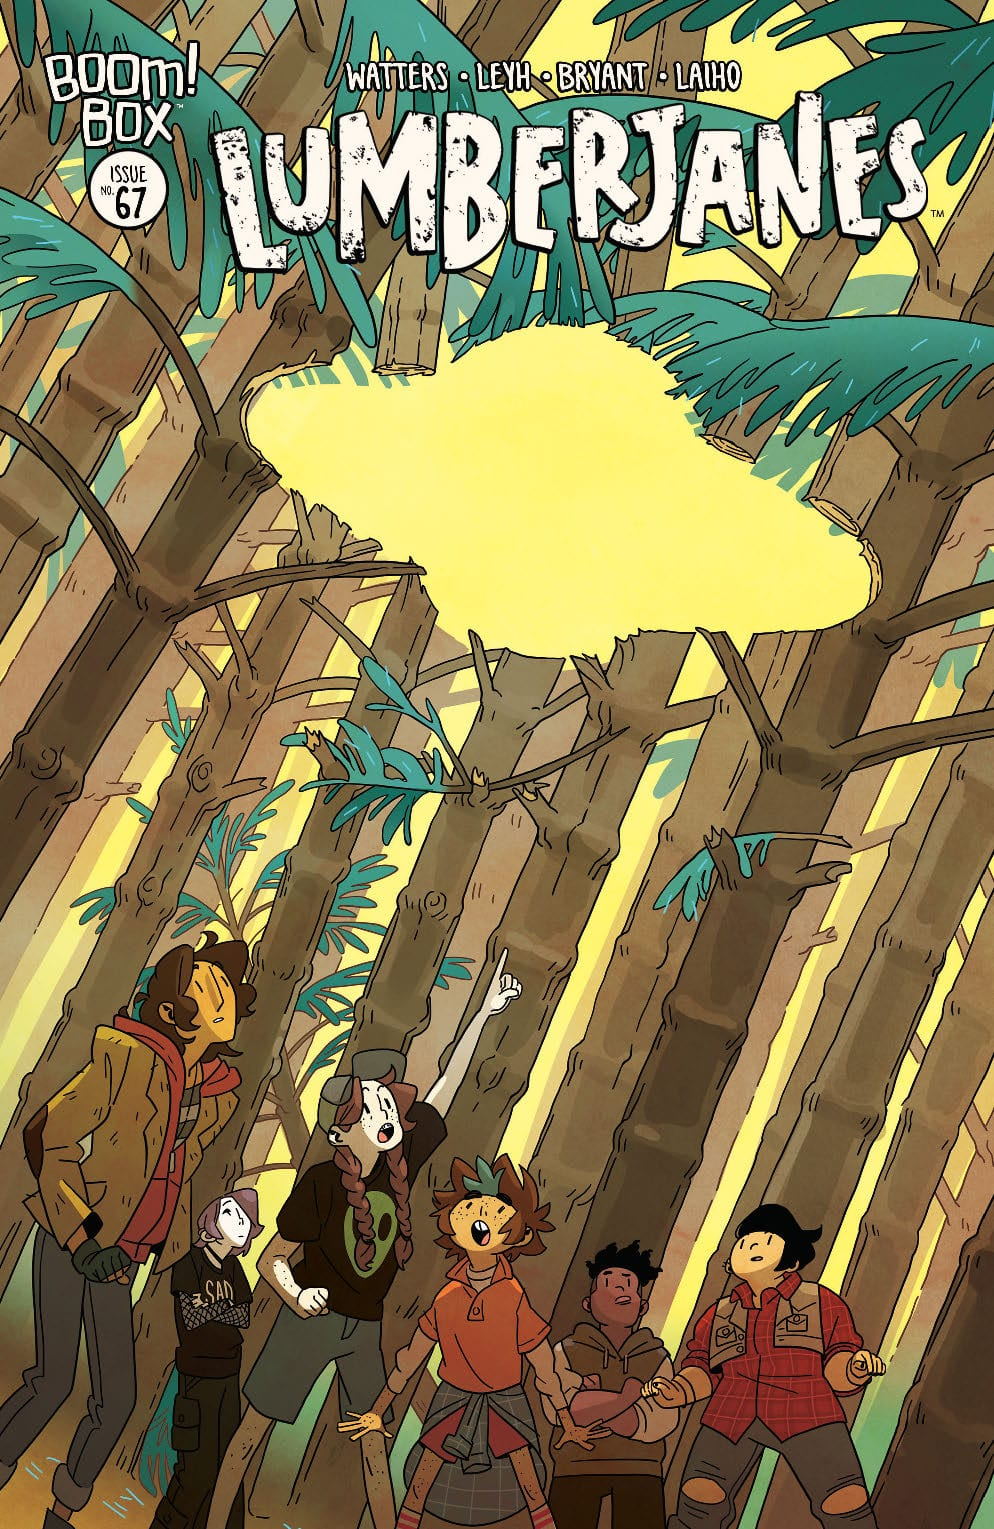 LUMBERJANES #67 - A Strong Reminder Why We Love This Series 1